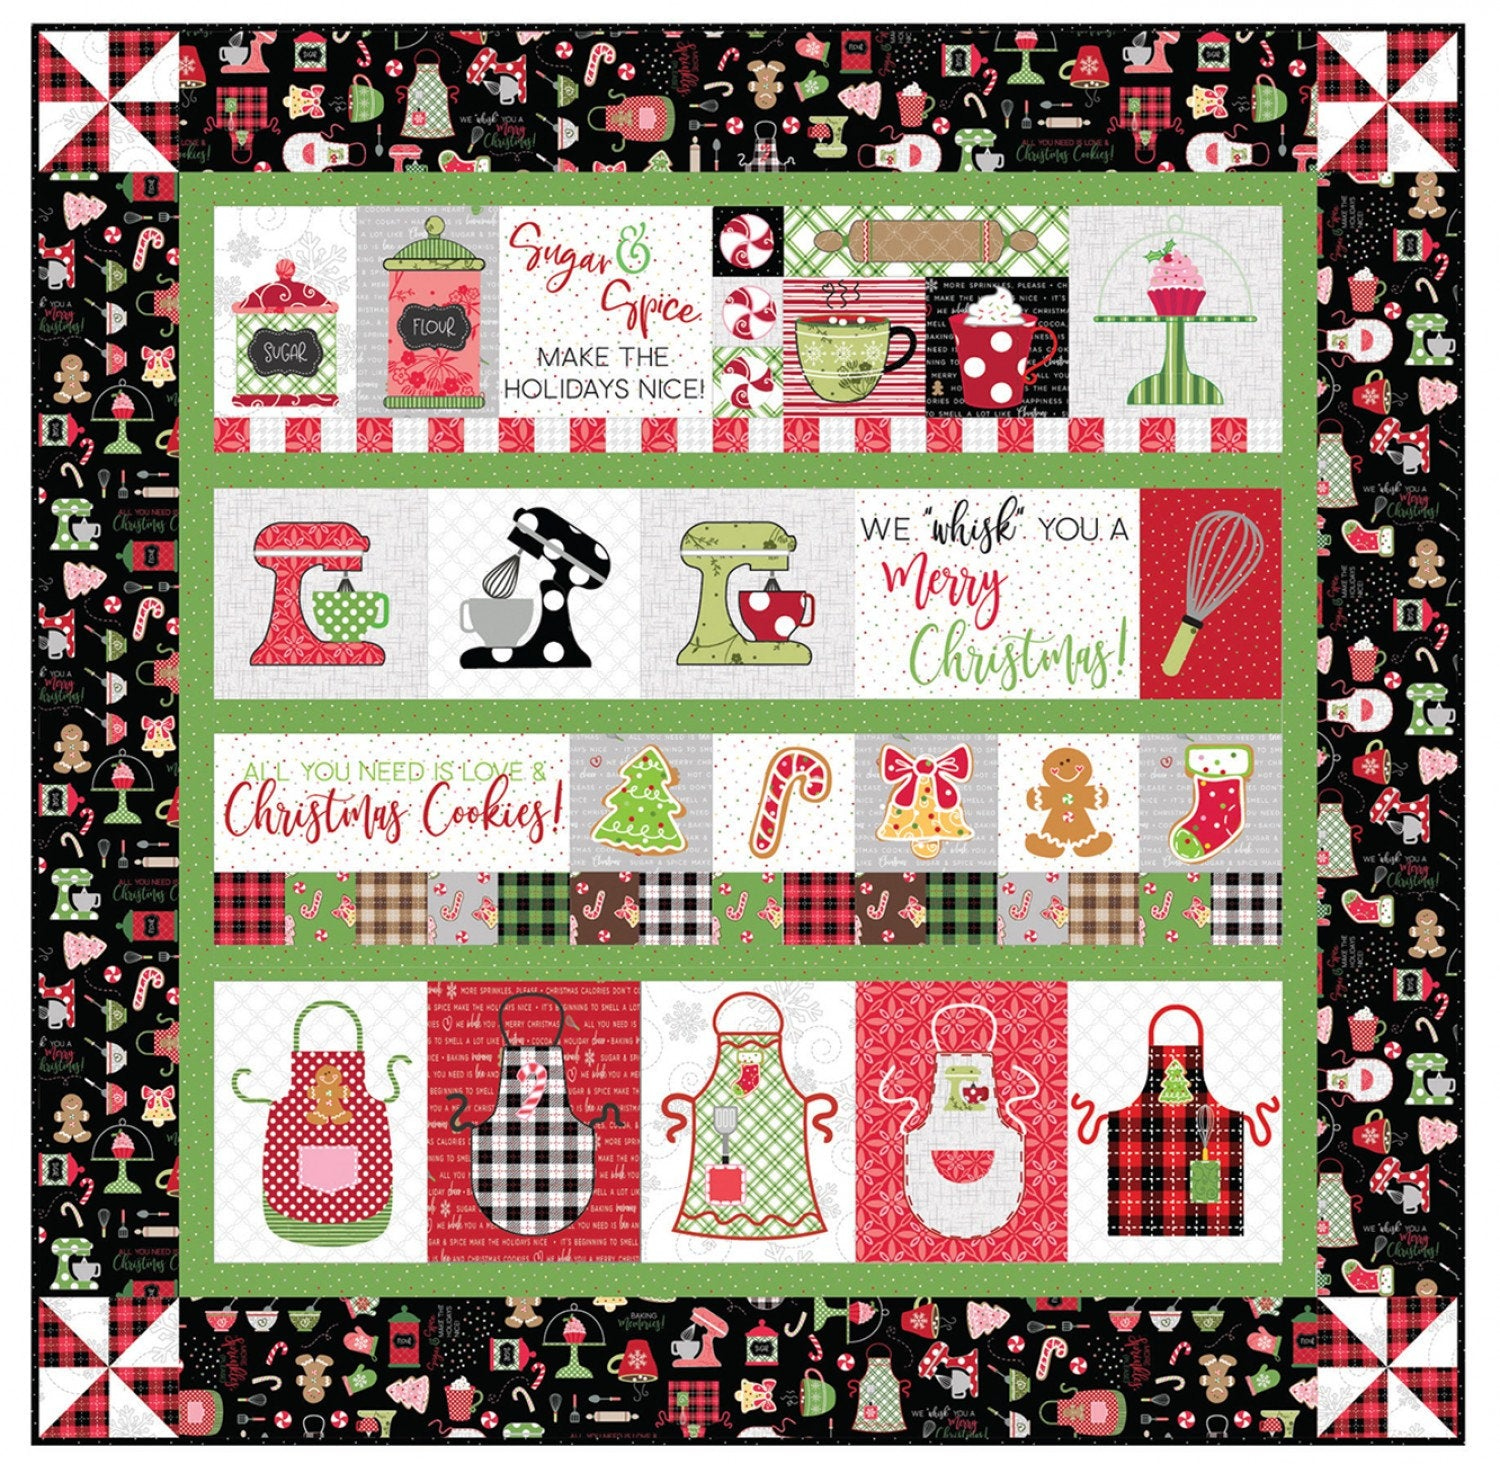 Christmas Quilt.Kimberbell S We Whisk You A Merry Christmas Quilt Sew Much More Austin Texas